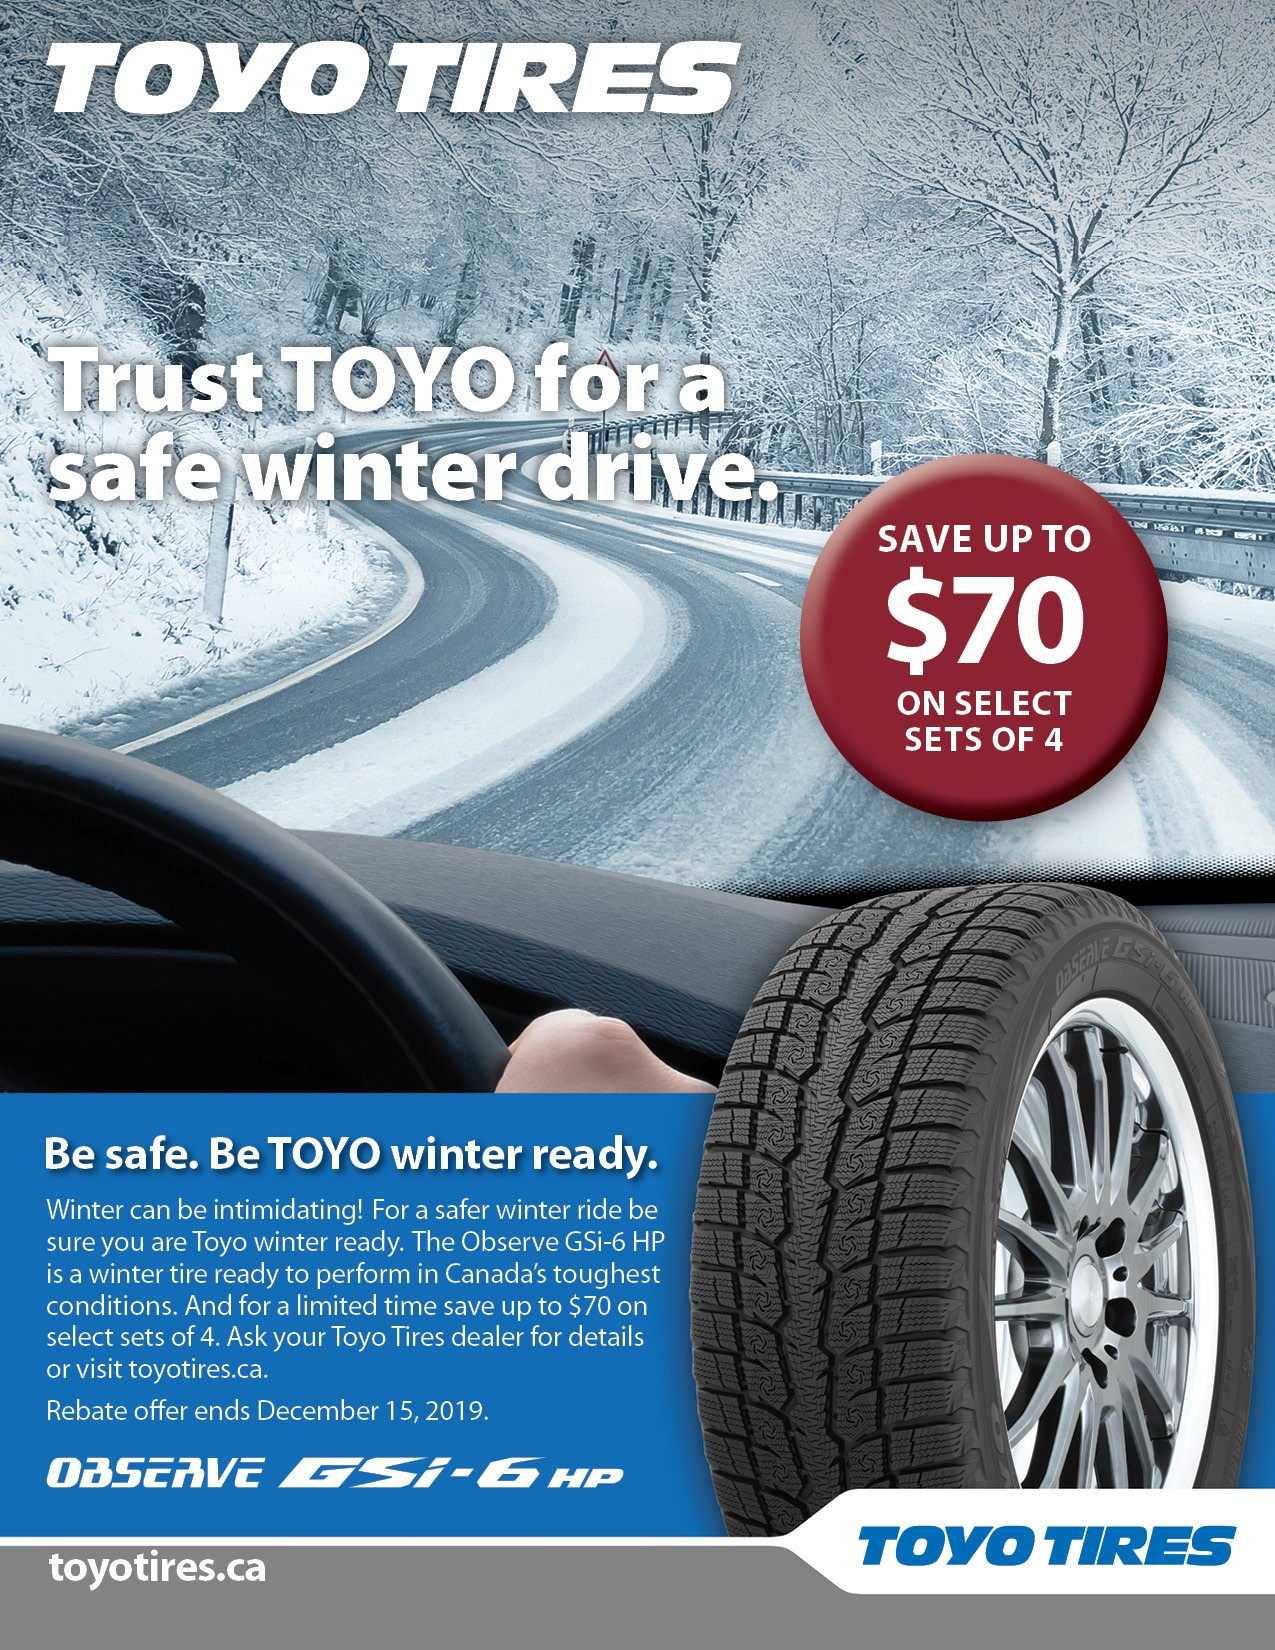 Toyo Winter Tire Rebate